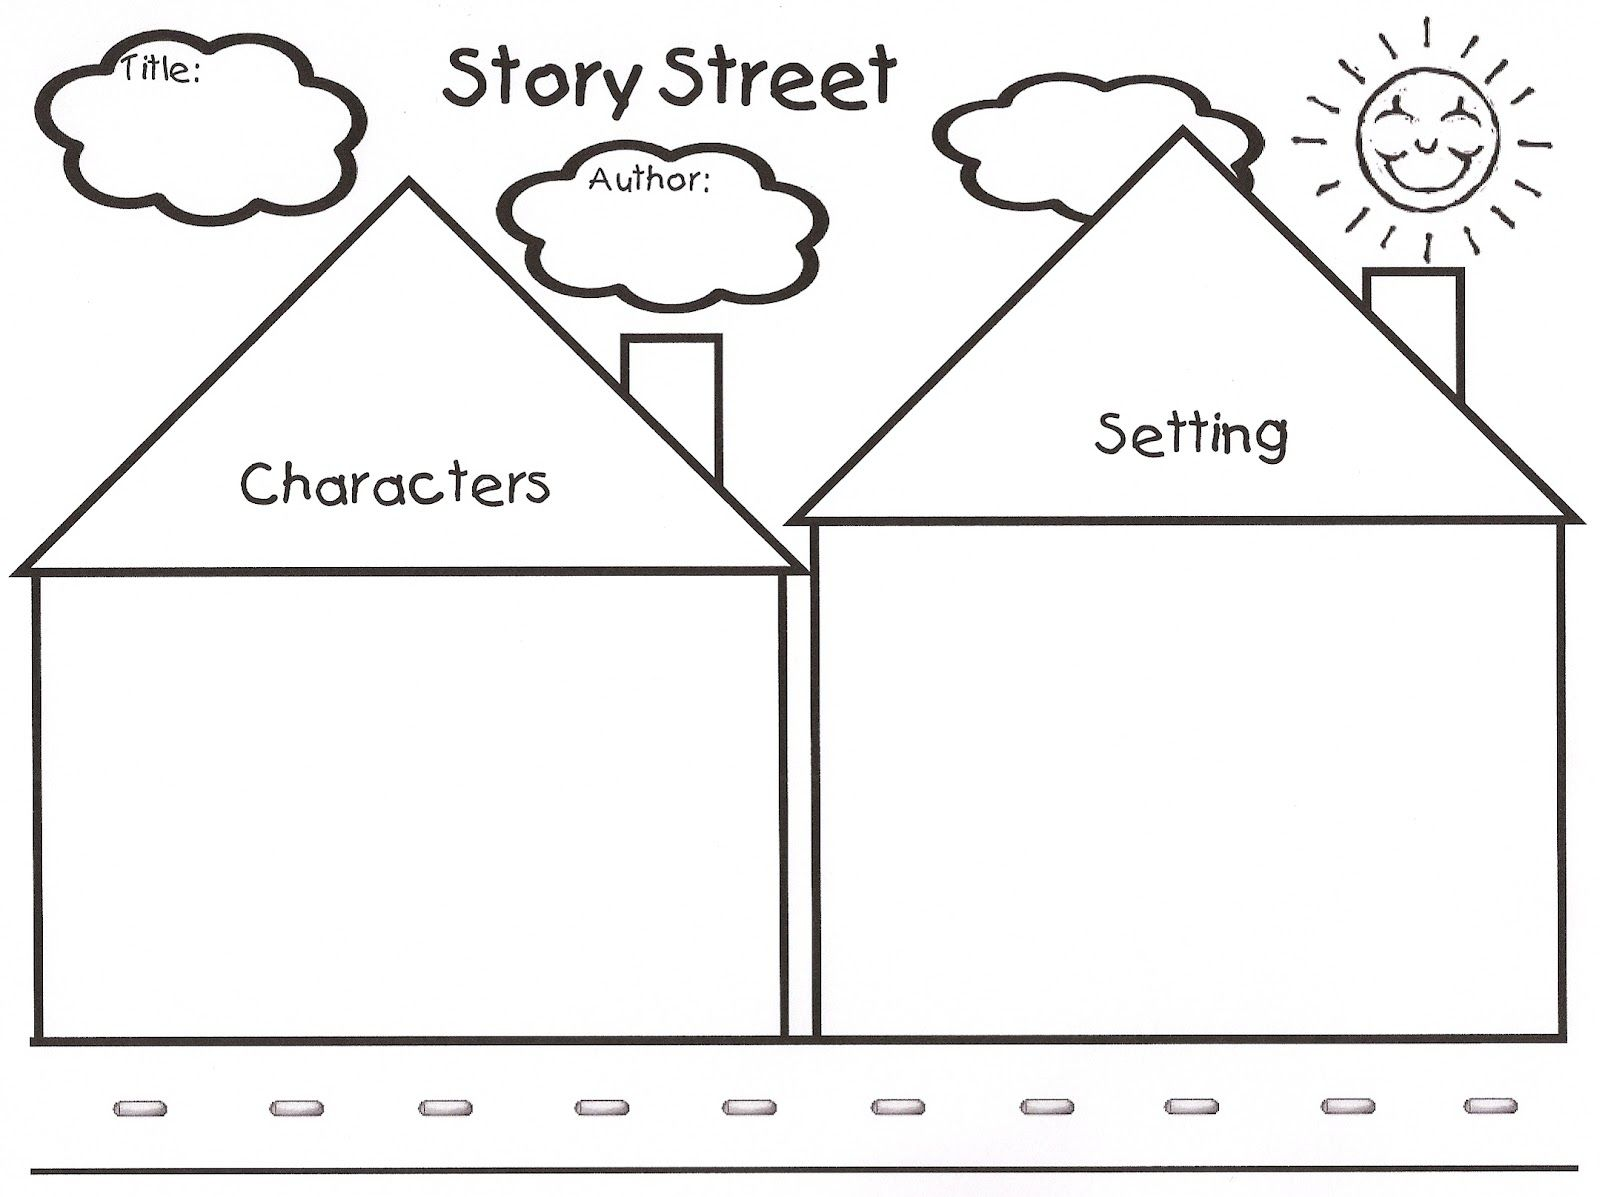 Worksheets Kindergarten Story totally terrific in texas reading teaching pinterest story elements